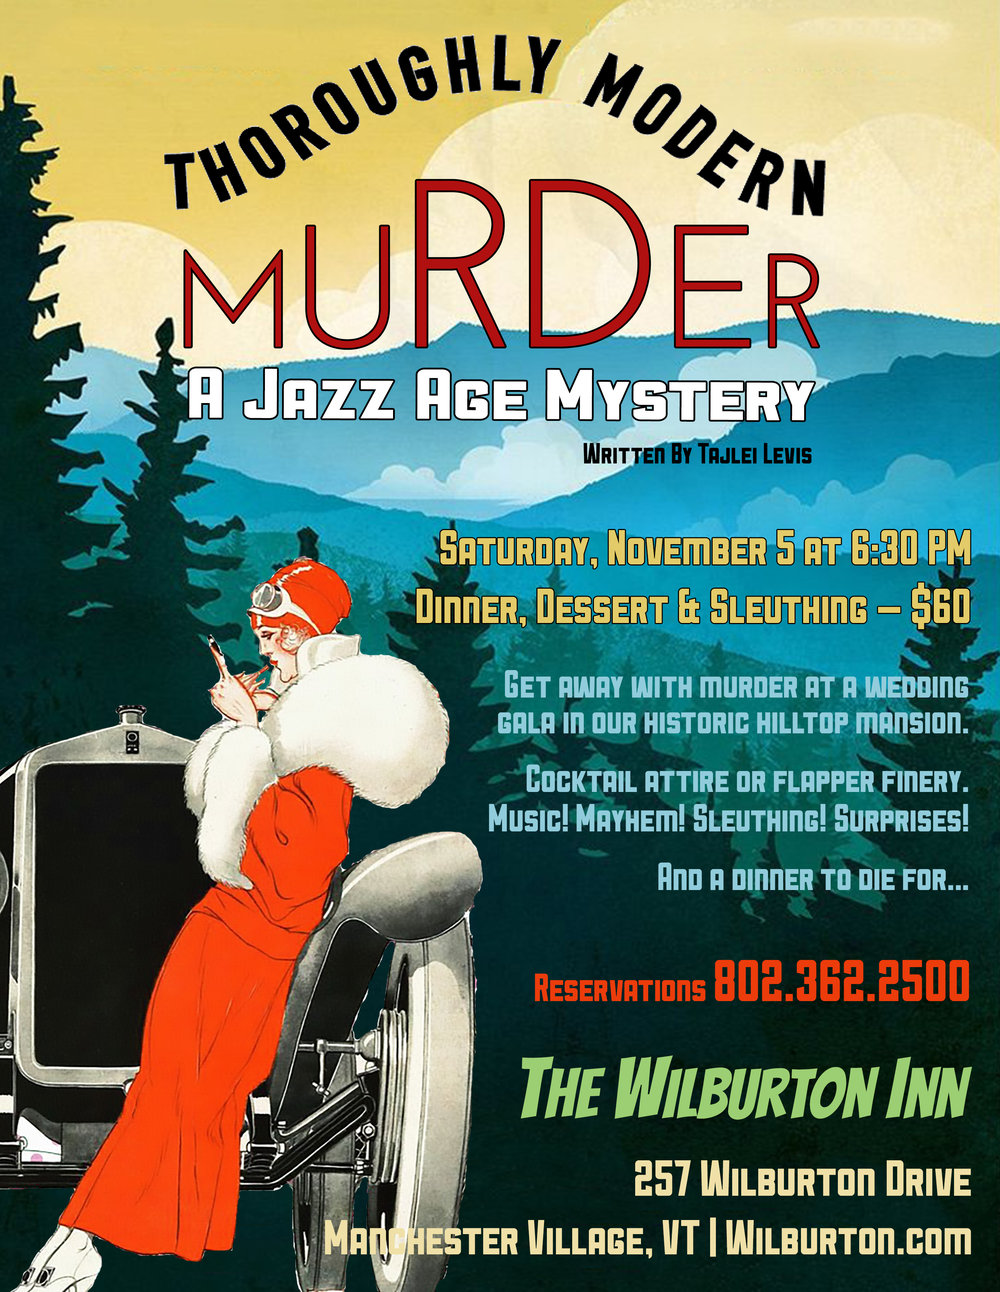 Murder Myster Night at the Wilburton Inn in Manchester Vermont